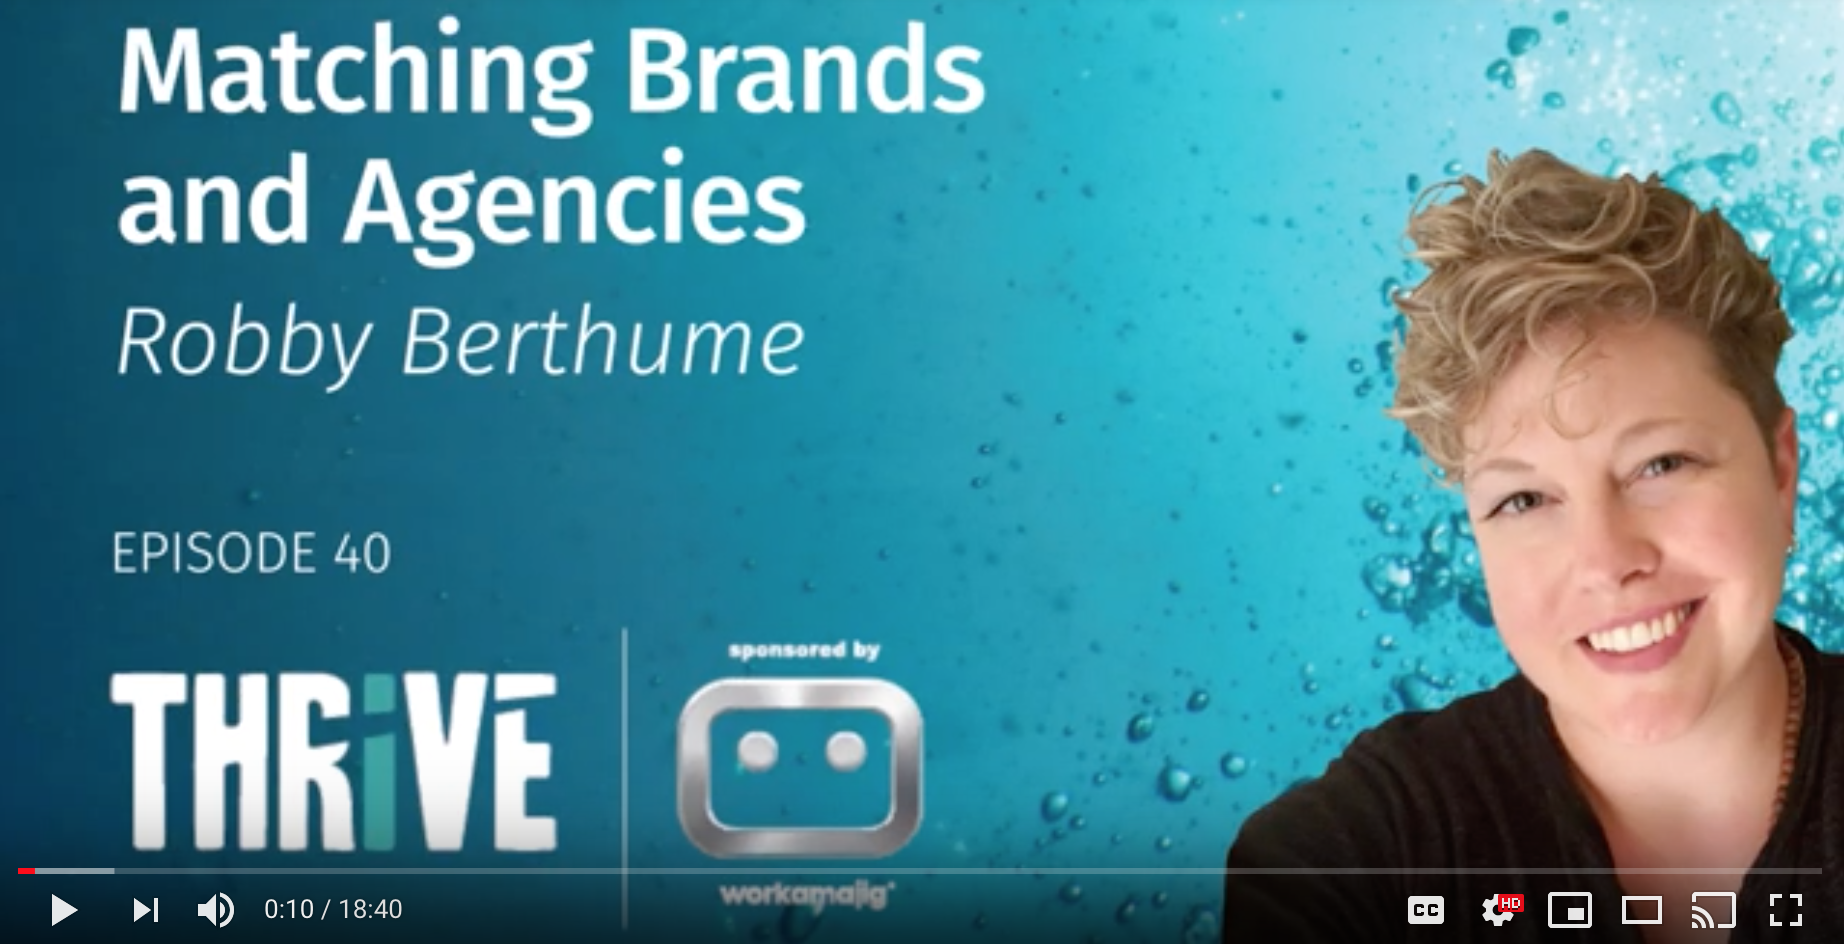 EP 40: Matching Brands and Agencies, with Robby Berthume